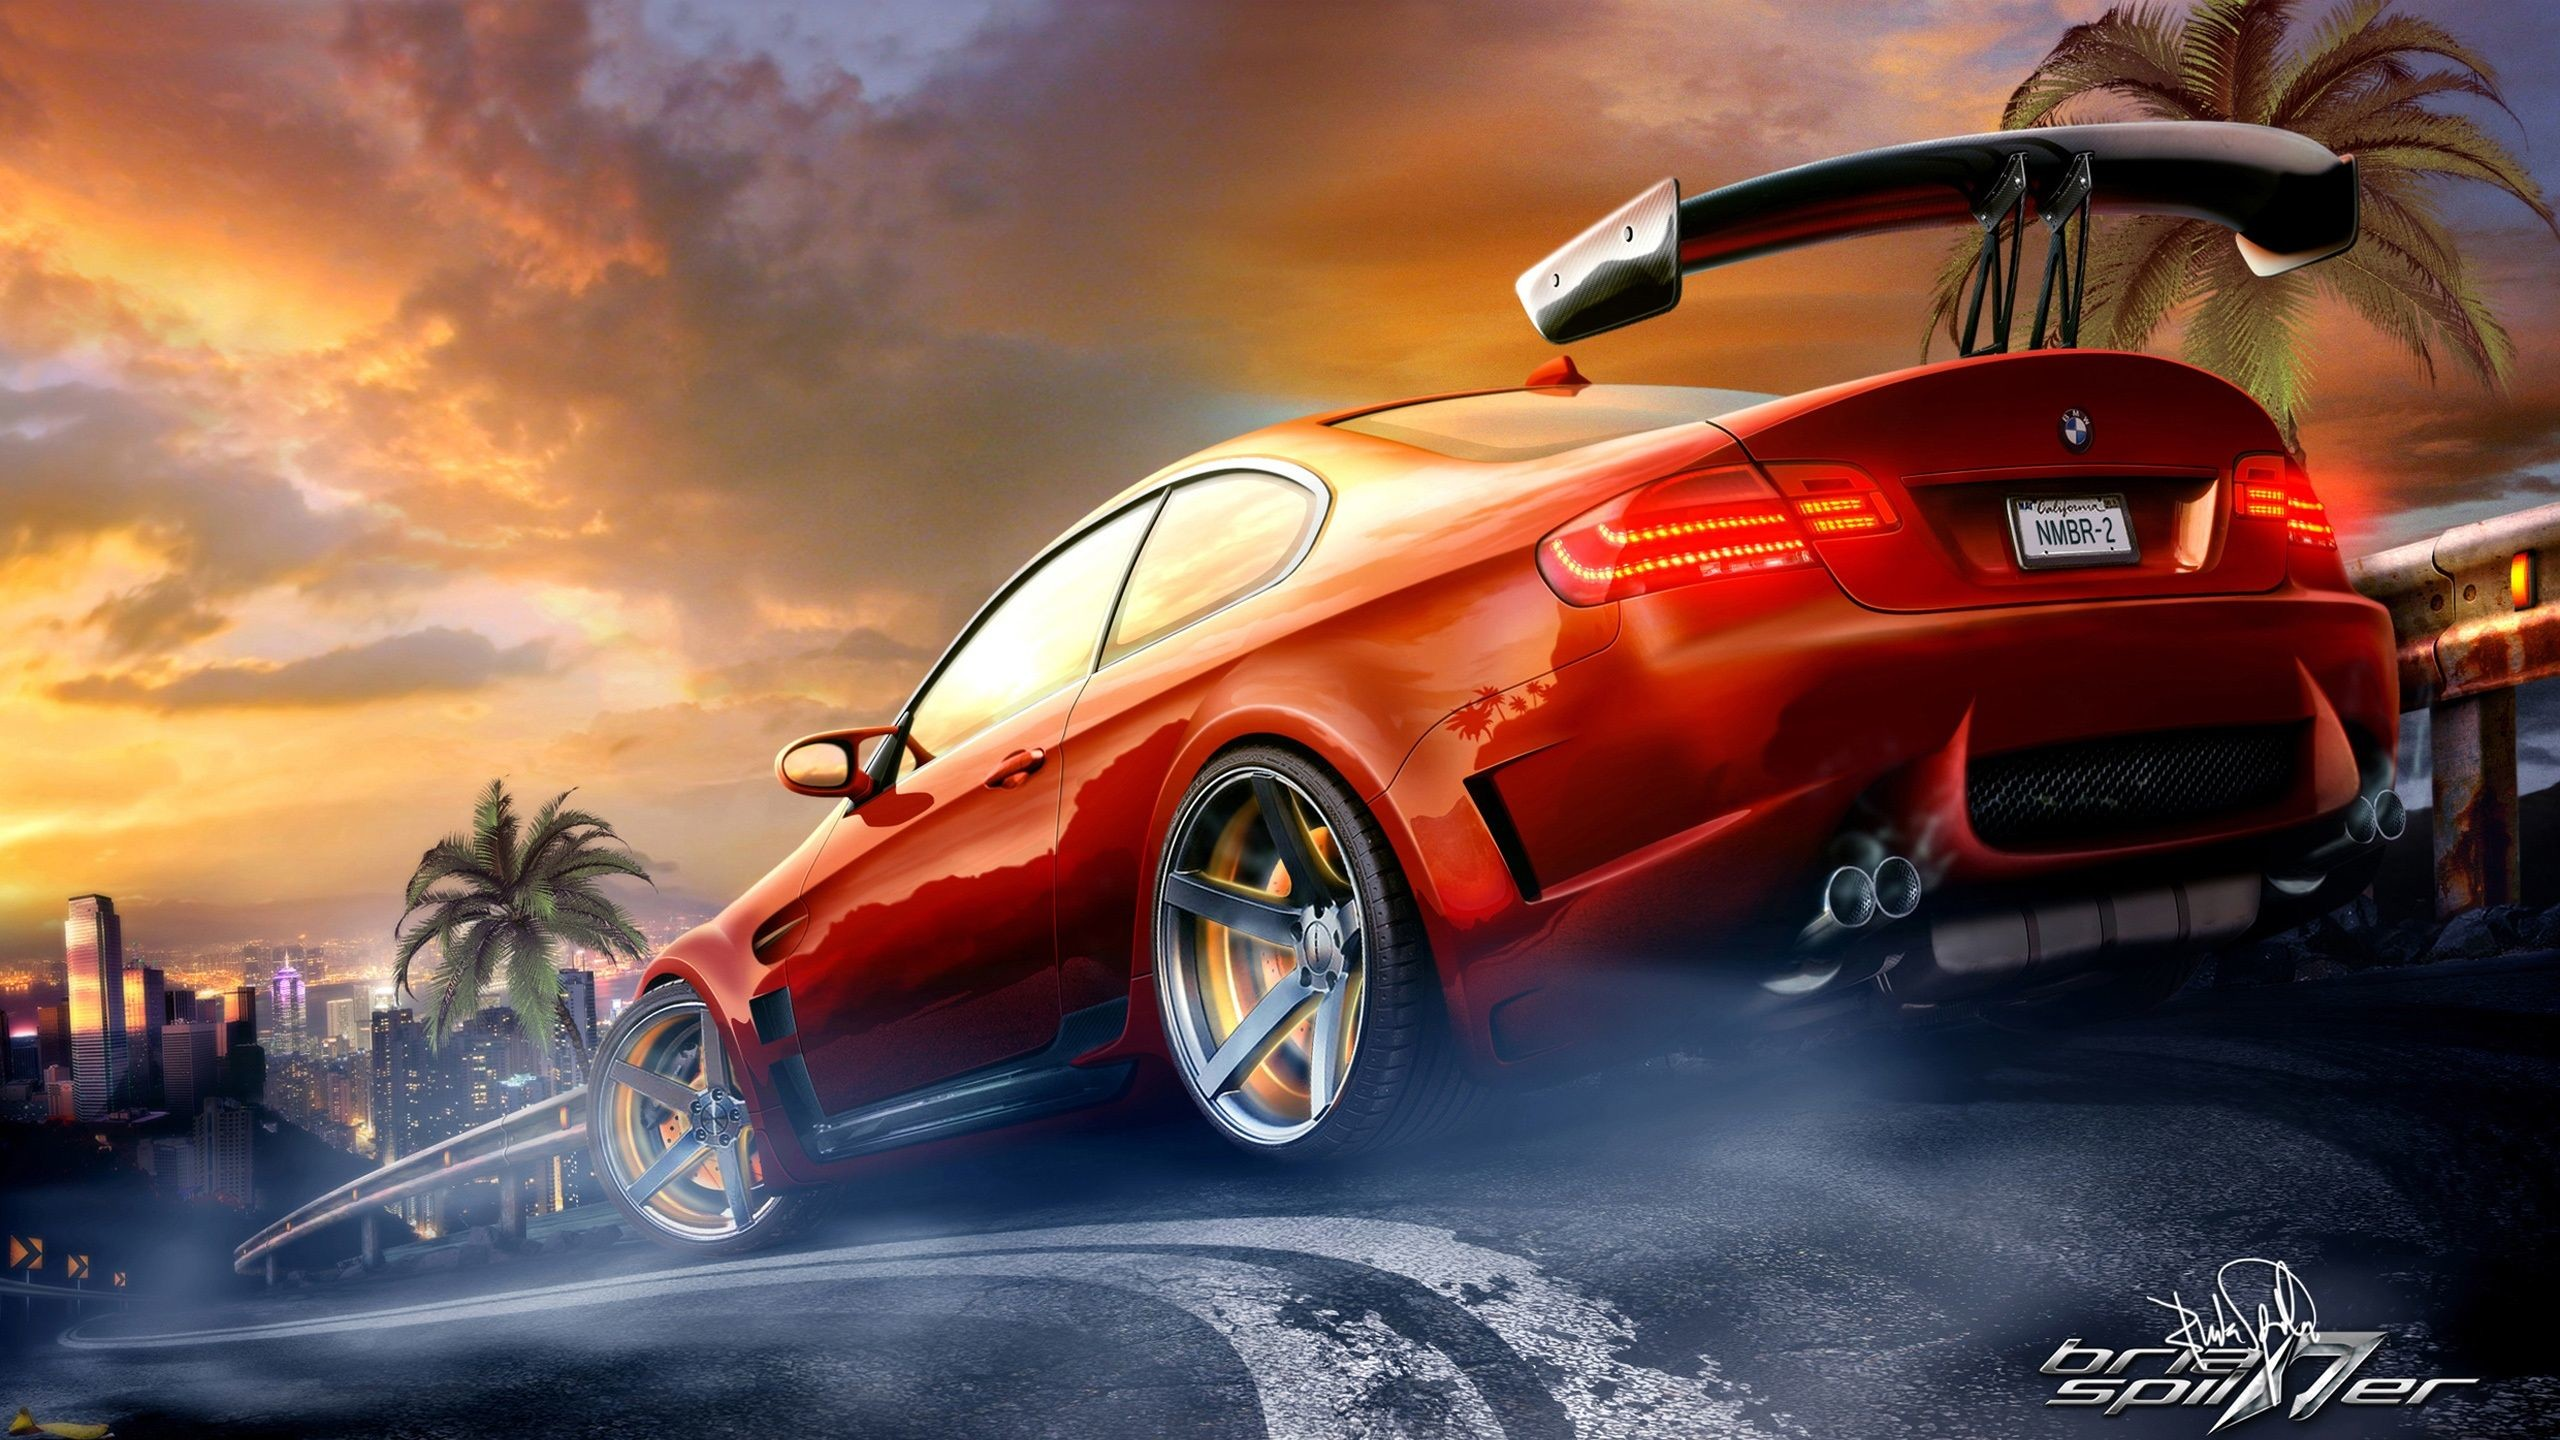 Top Hd Wallpapers Cars Wallpapers Desktop Hd: Street Racing Cars Wallpapers ·①